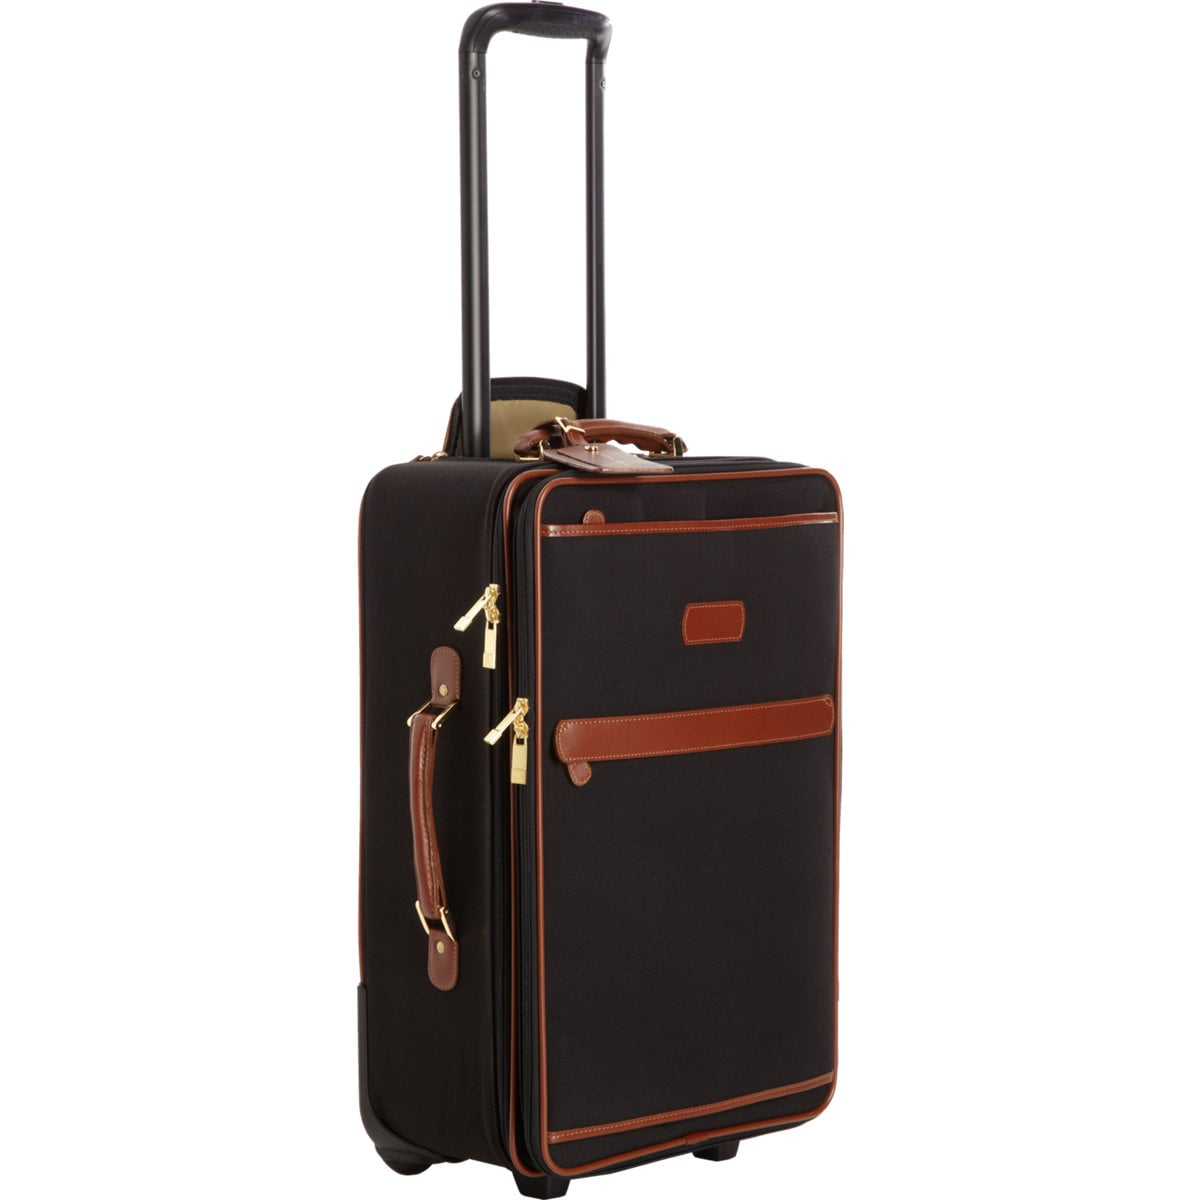 The most stressful part of traveling during Thanksgiving isn't deciding on the perfect dish to make — it's figuring out how to look cute while still catching your flight on time. This T.Anthony trolley ($695) will take care of that. It's roomy, it's stylish, and it fits overhead. You'll never have to worry about losing your luggage again. — RK